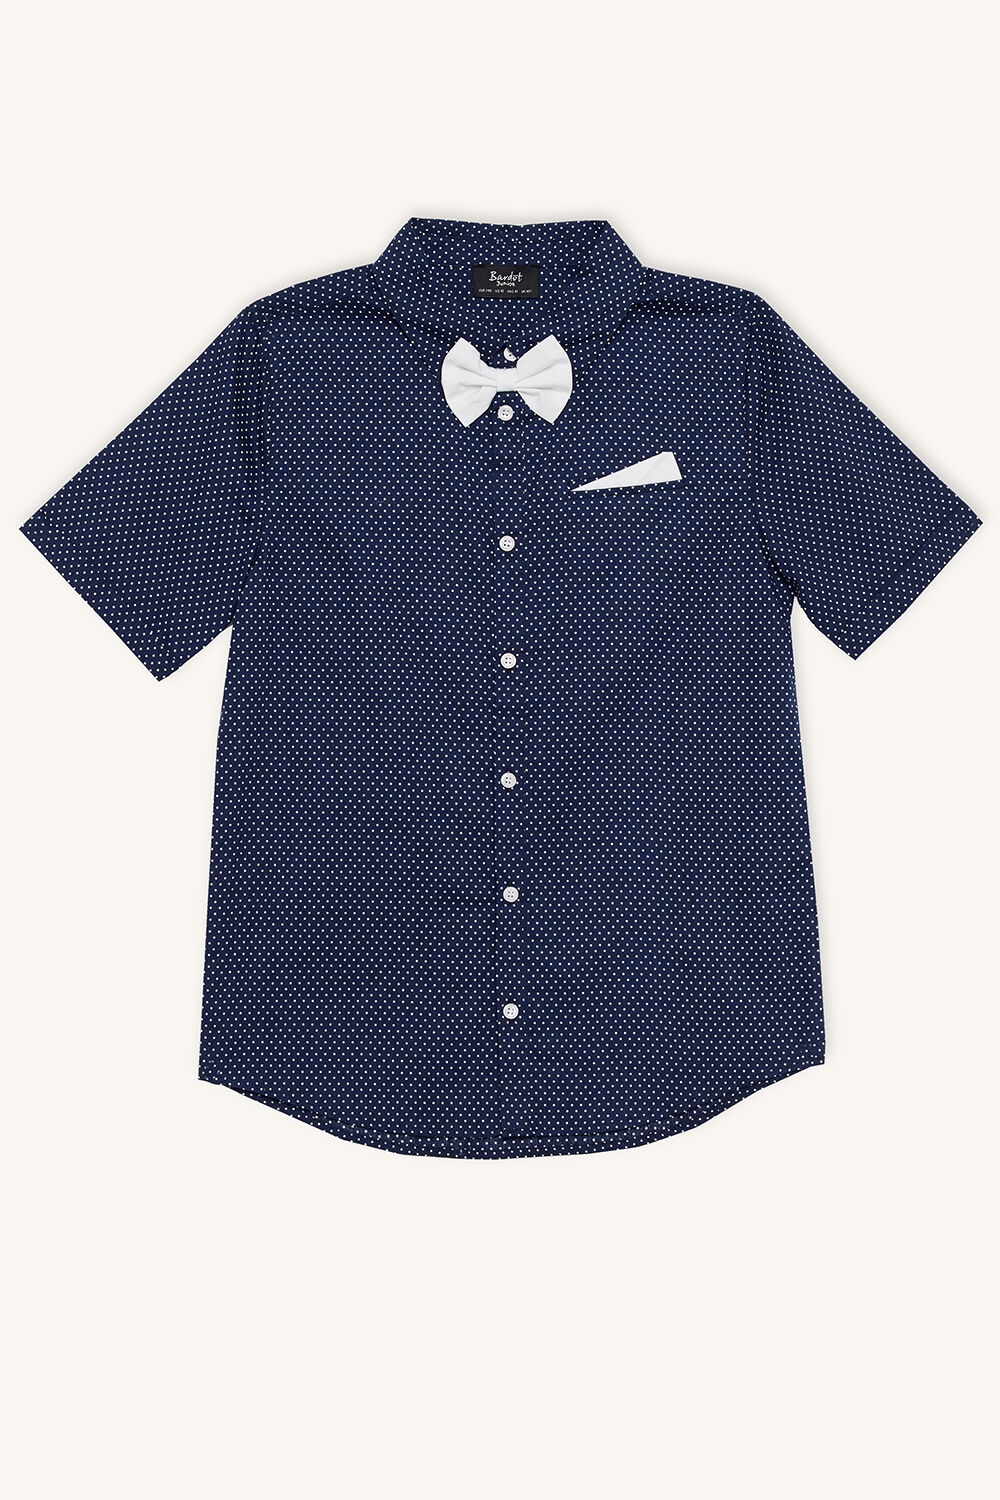 SPOT SHIRT in colour BLUE INDIGO